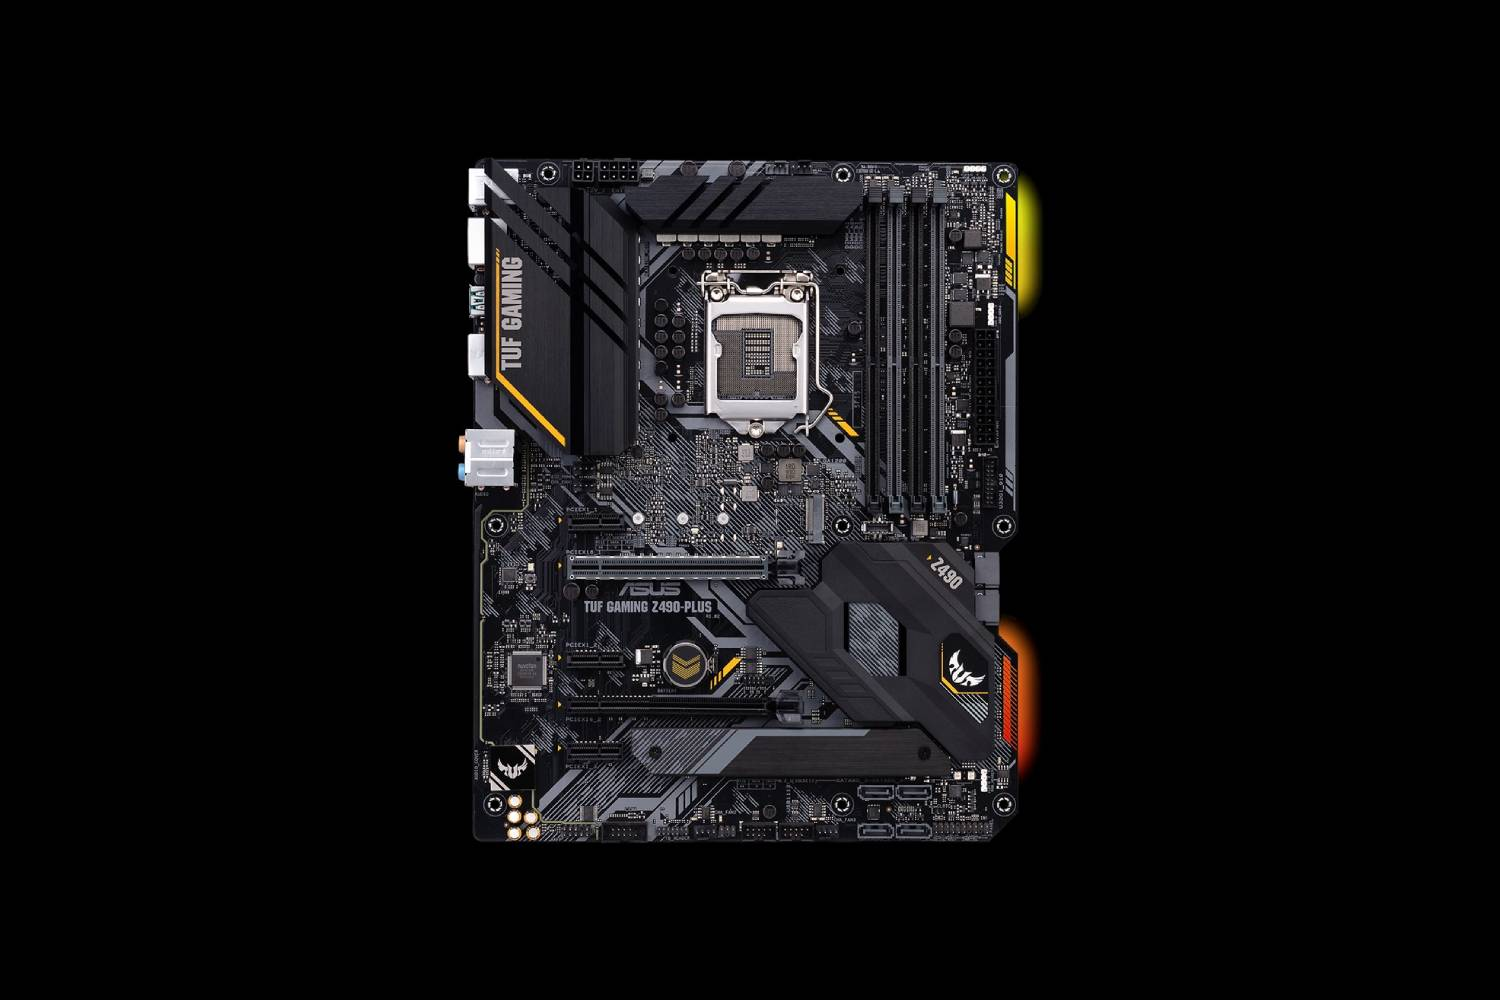 Asus Tuf Gaming Z490-PLUS Motherbaord